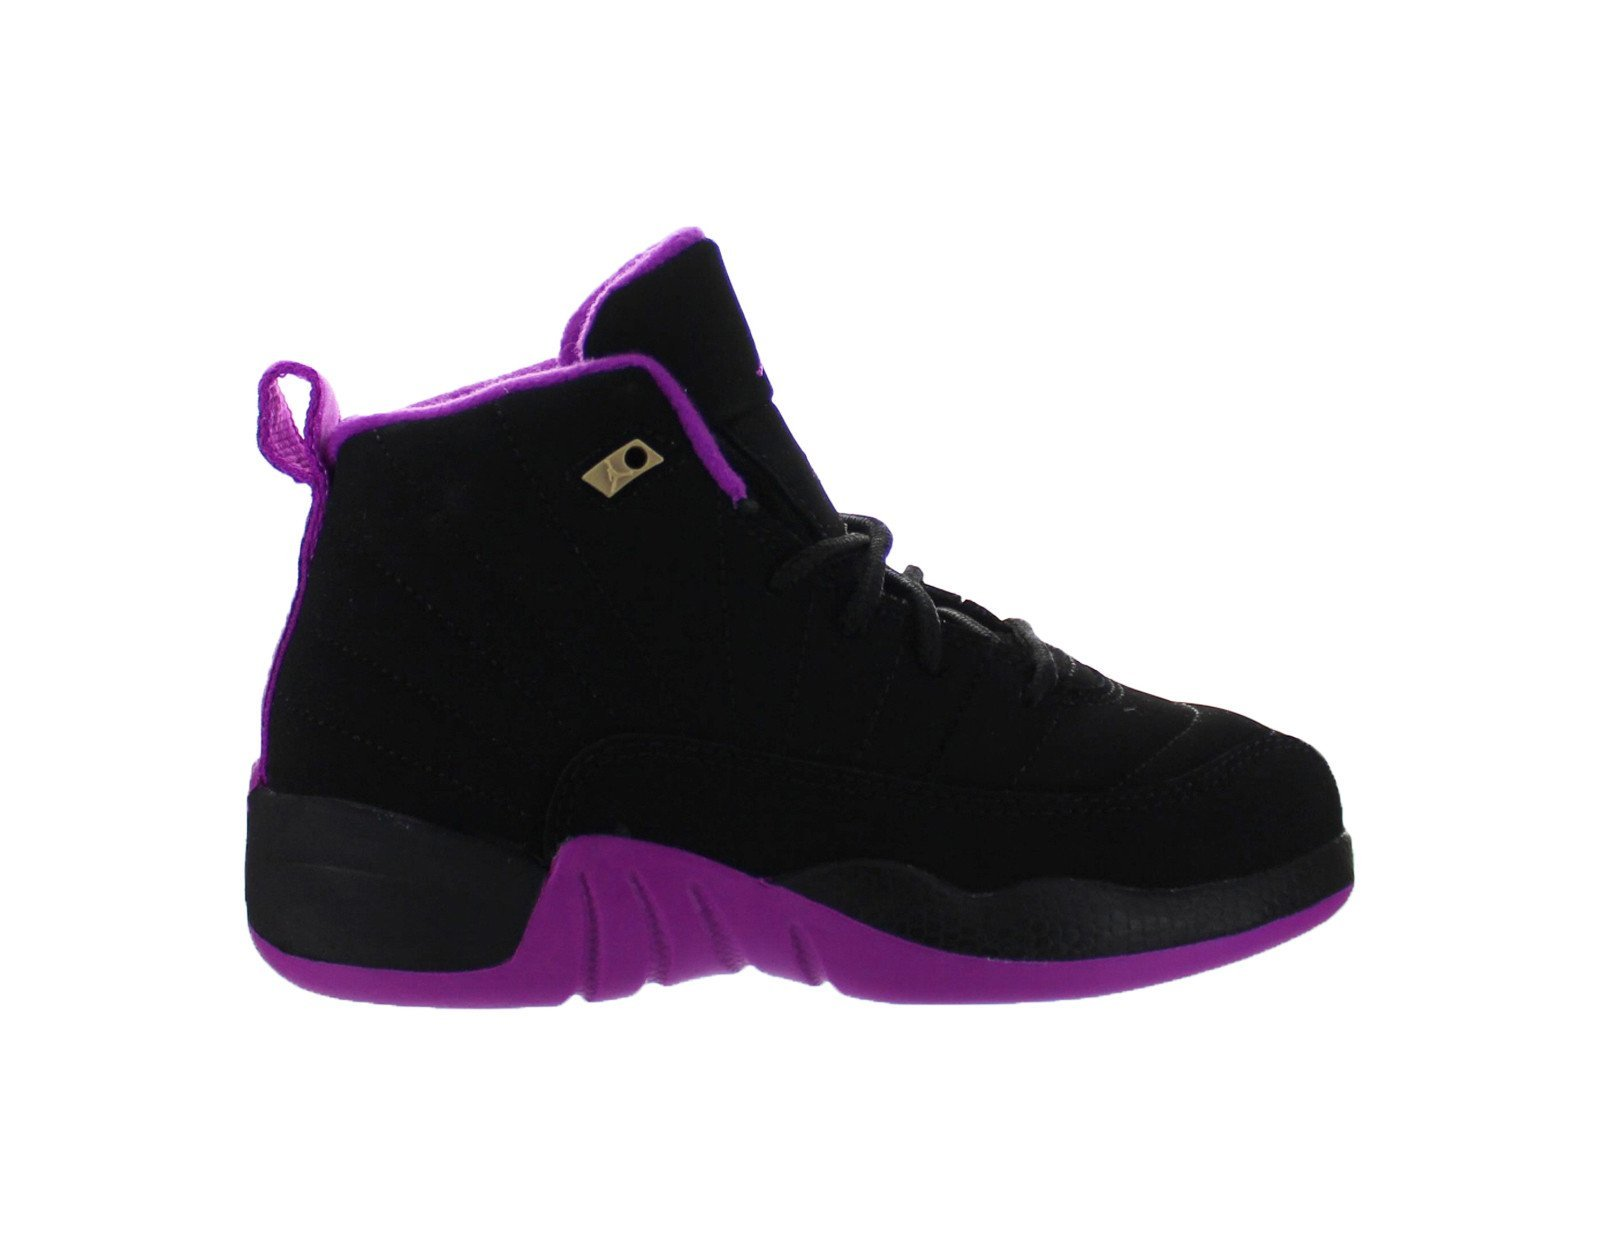 Air Jordan 12 XII Retro (PS) Black - Hyper Violet - Purple US 11C by NIKE